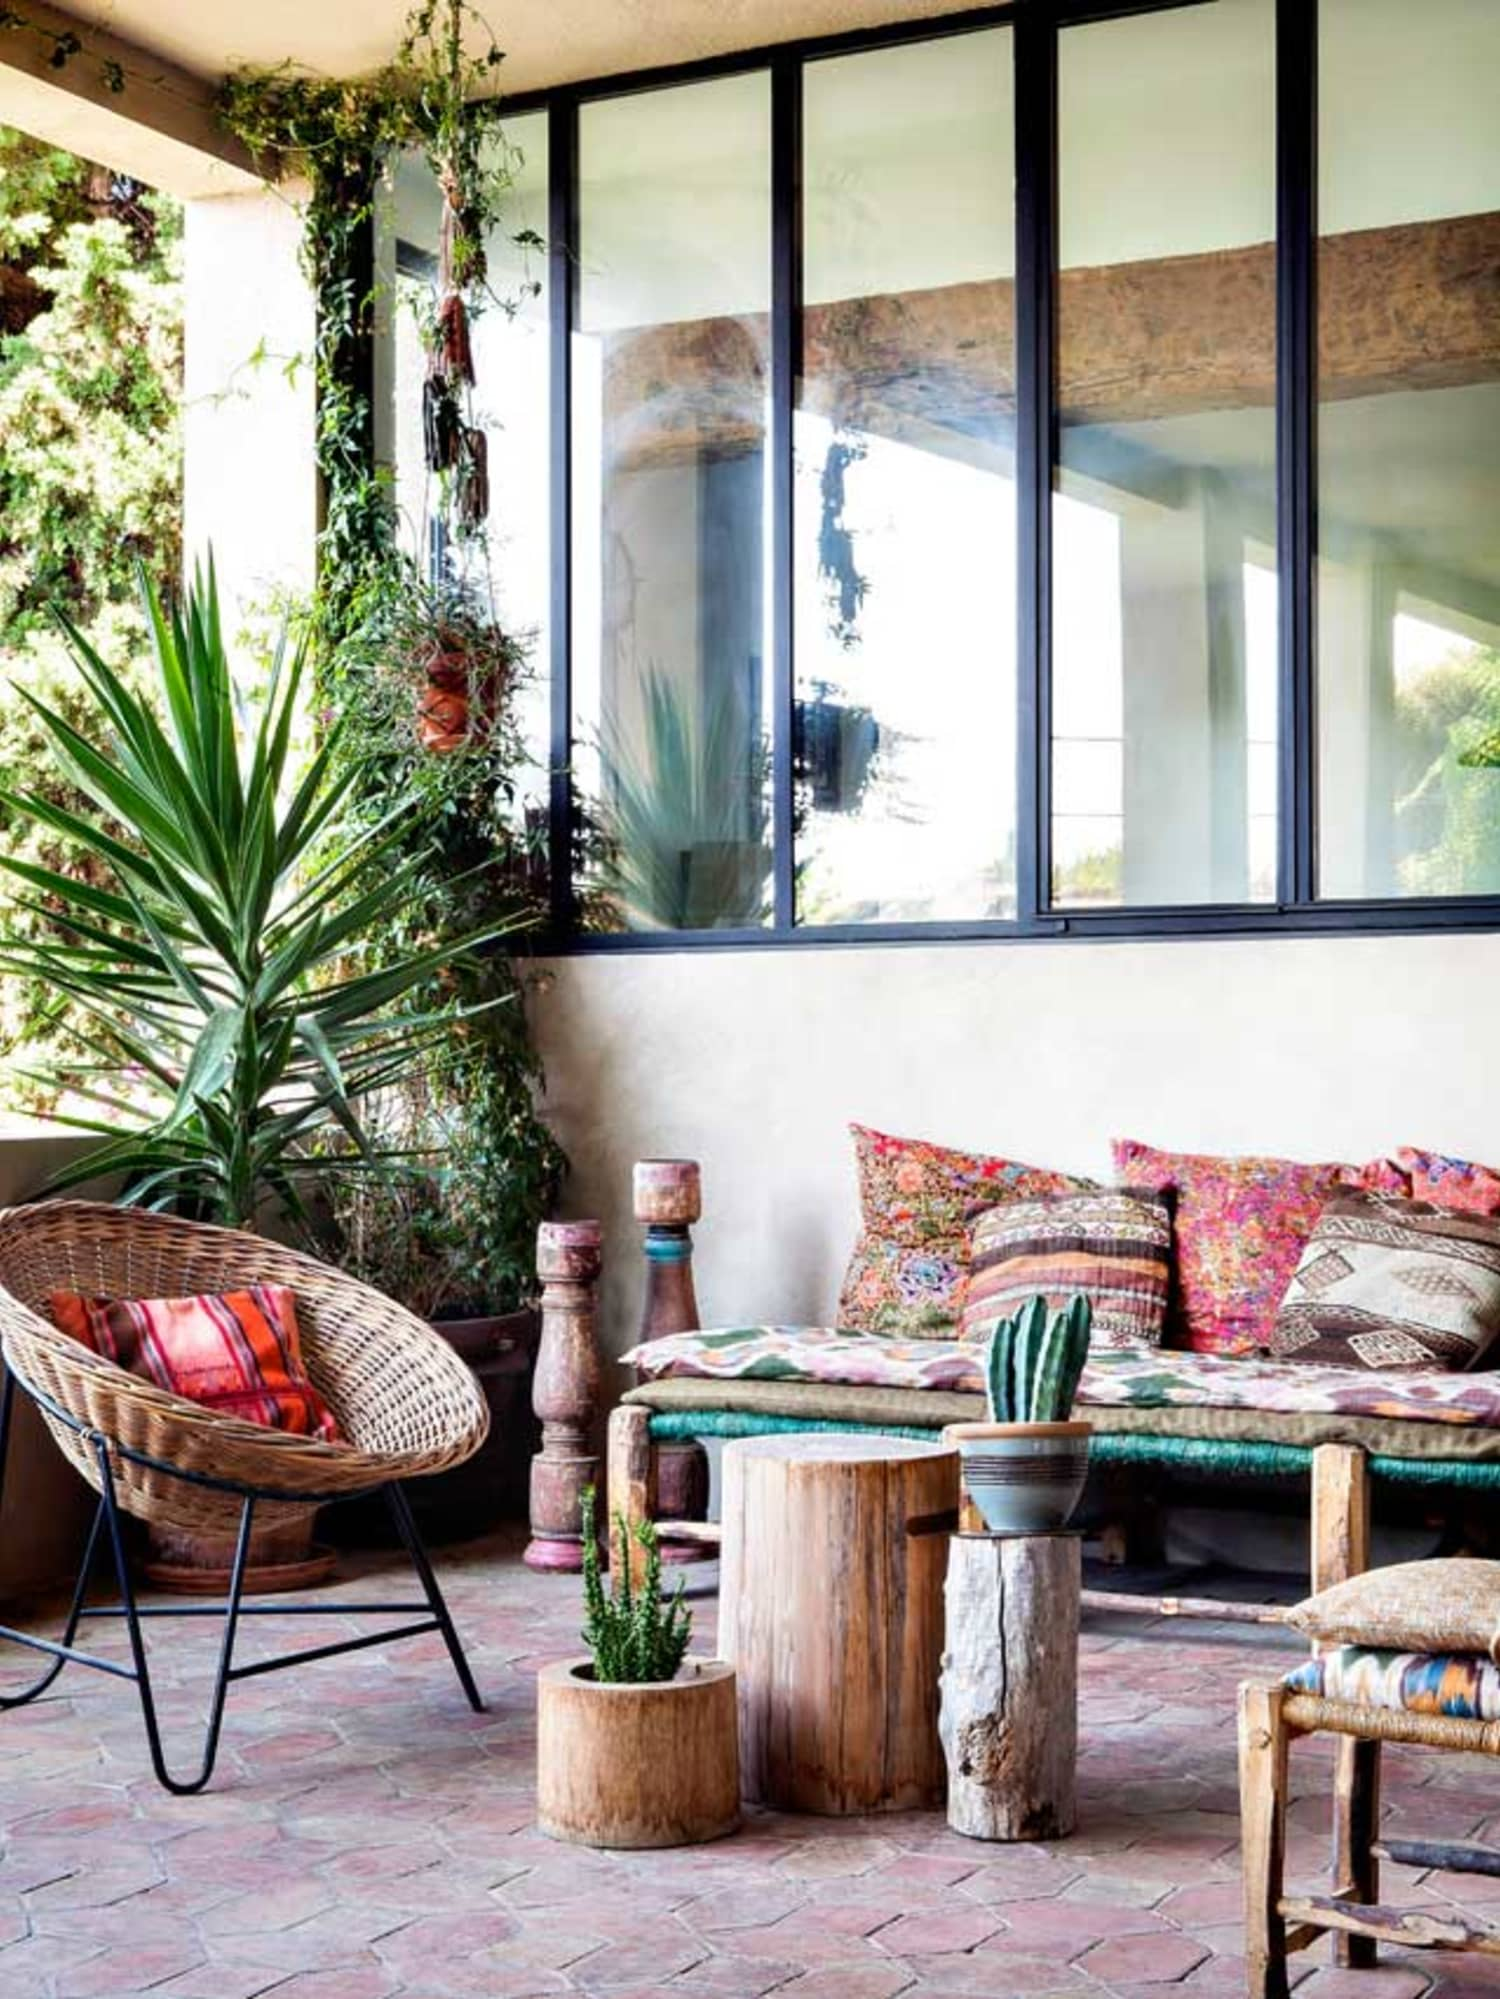 Bohemian Decor Ideas for Outdoor Patio Space | Apartment ... on Bohemian Patio Ideas id=33699